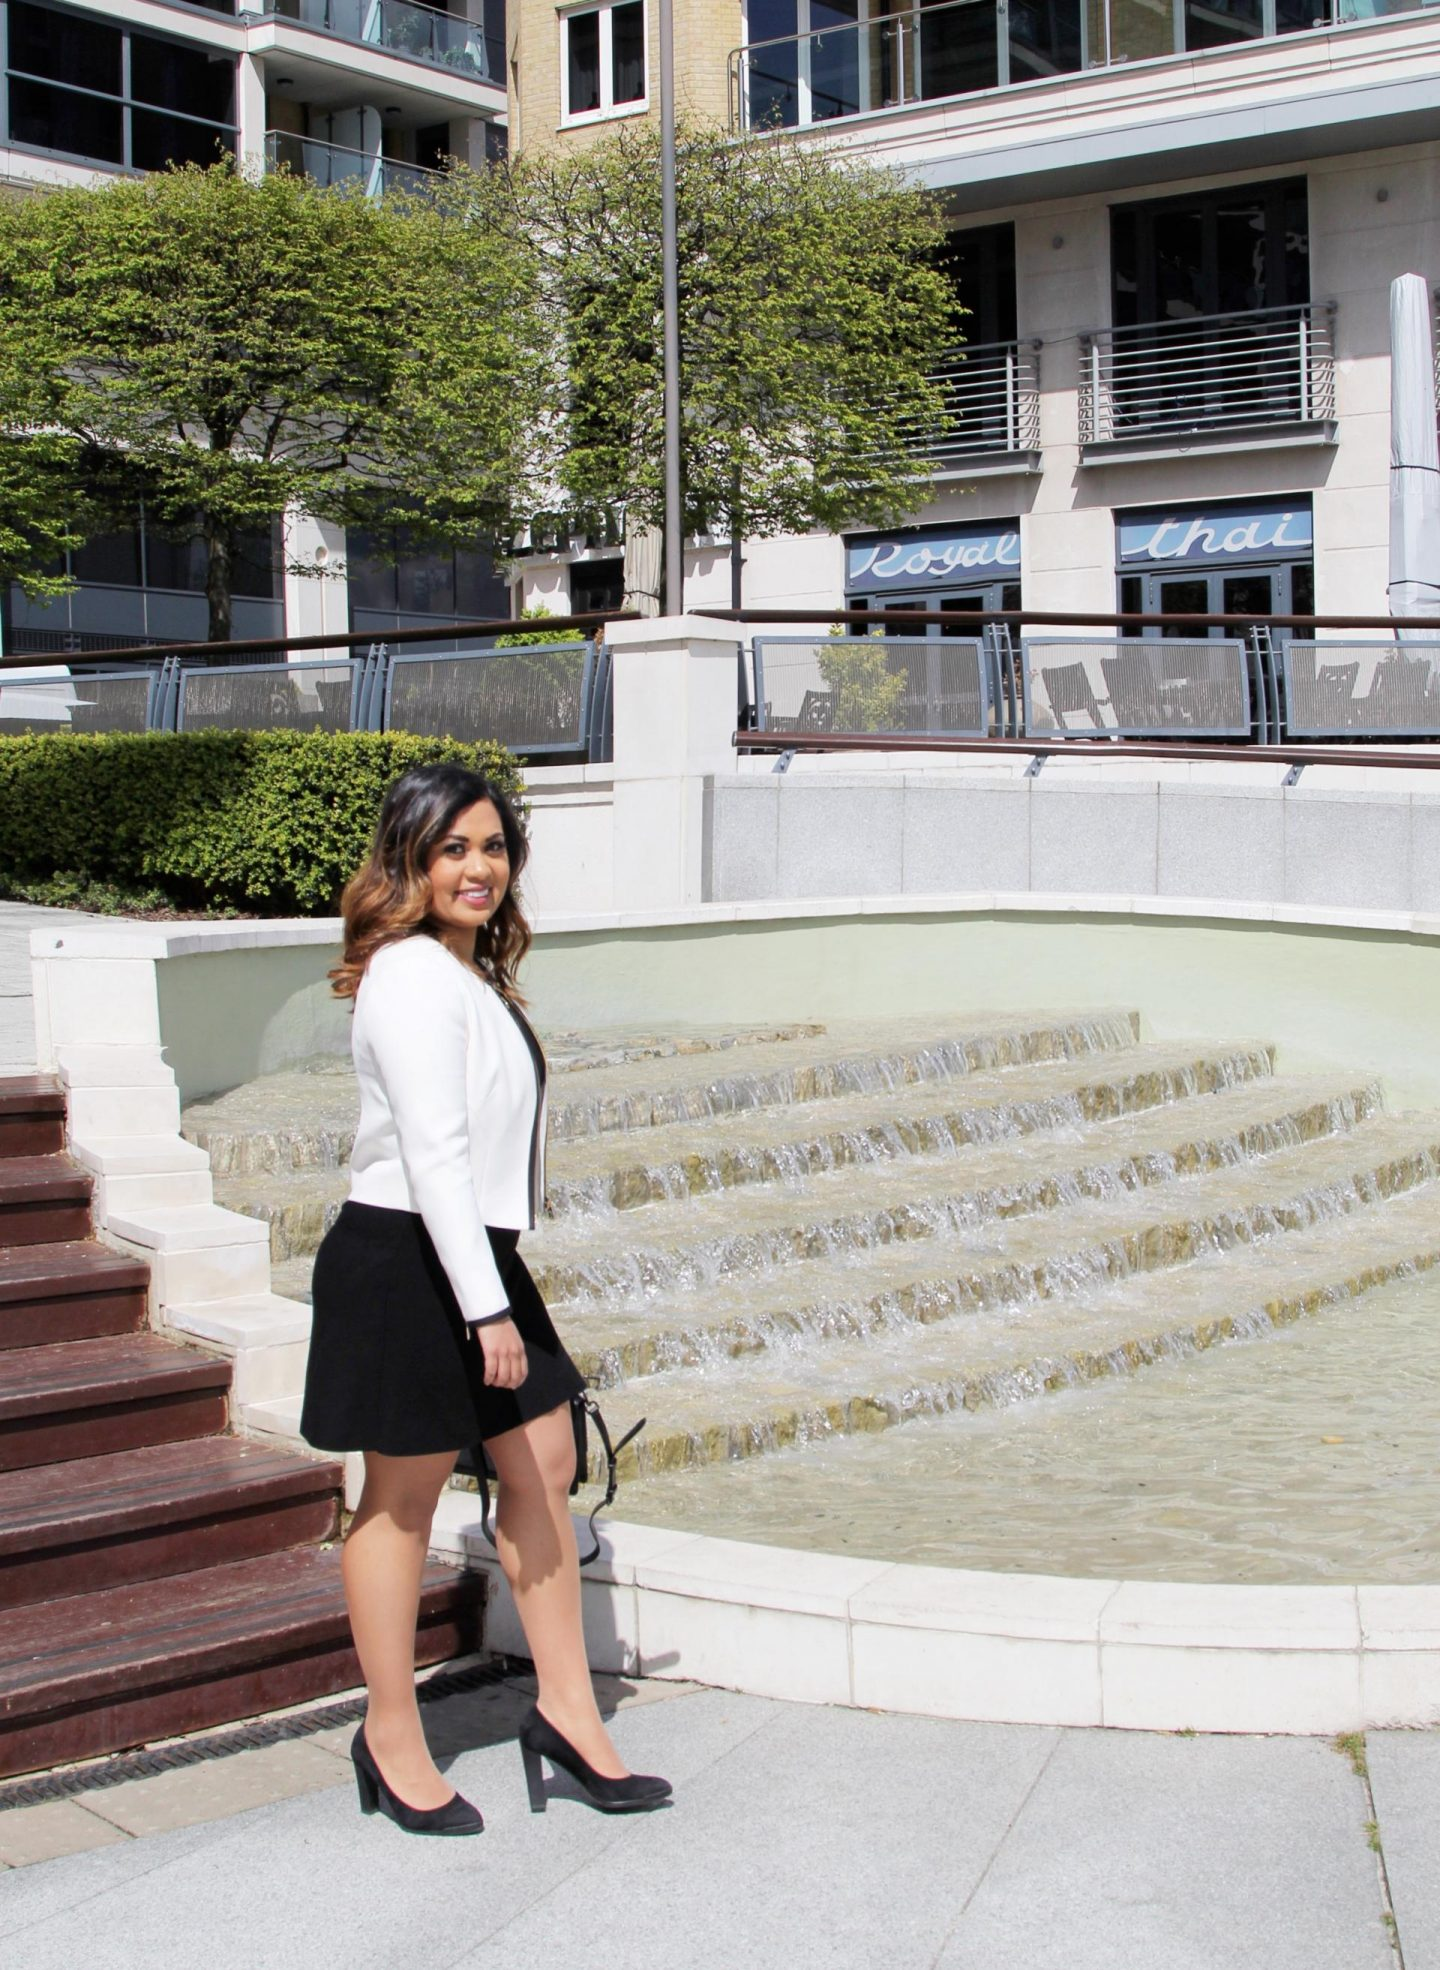 #GirlBoss | What I wear to work